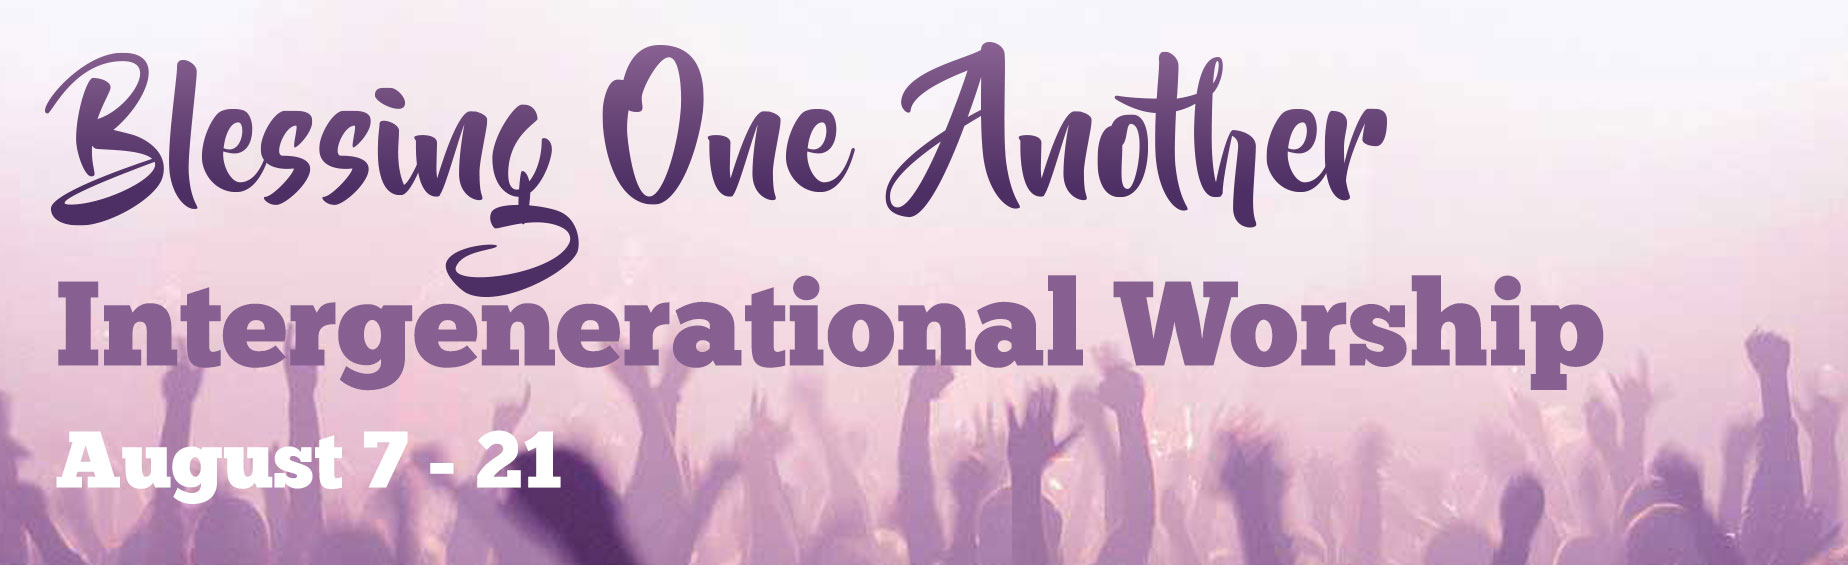 Blessing One Another - Intergenerational Worship 2016